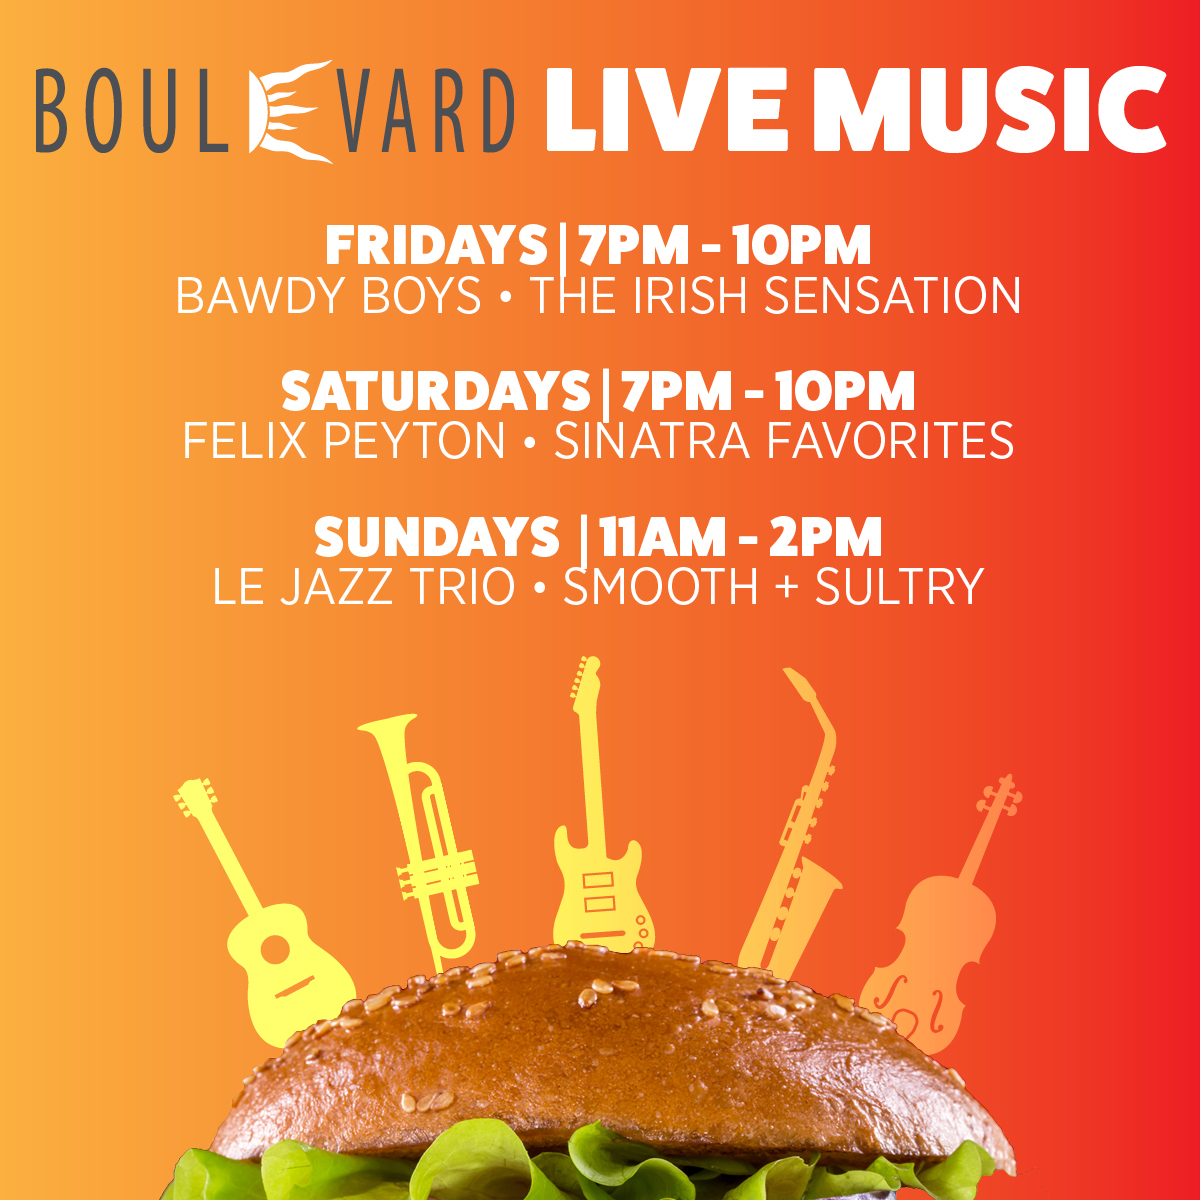 Live Music at the Boulevard